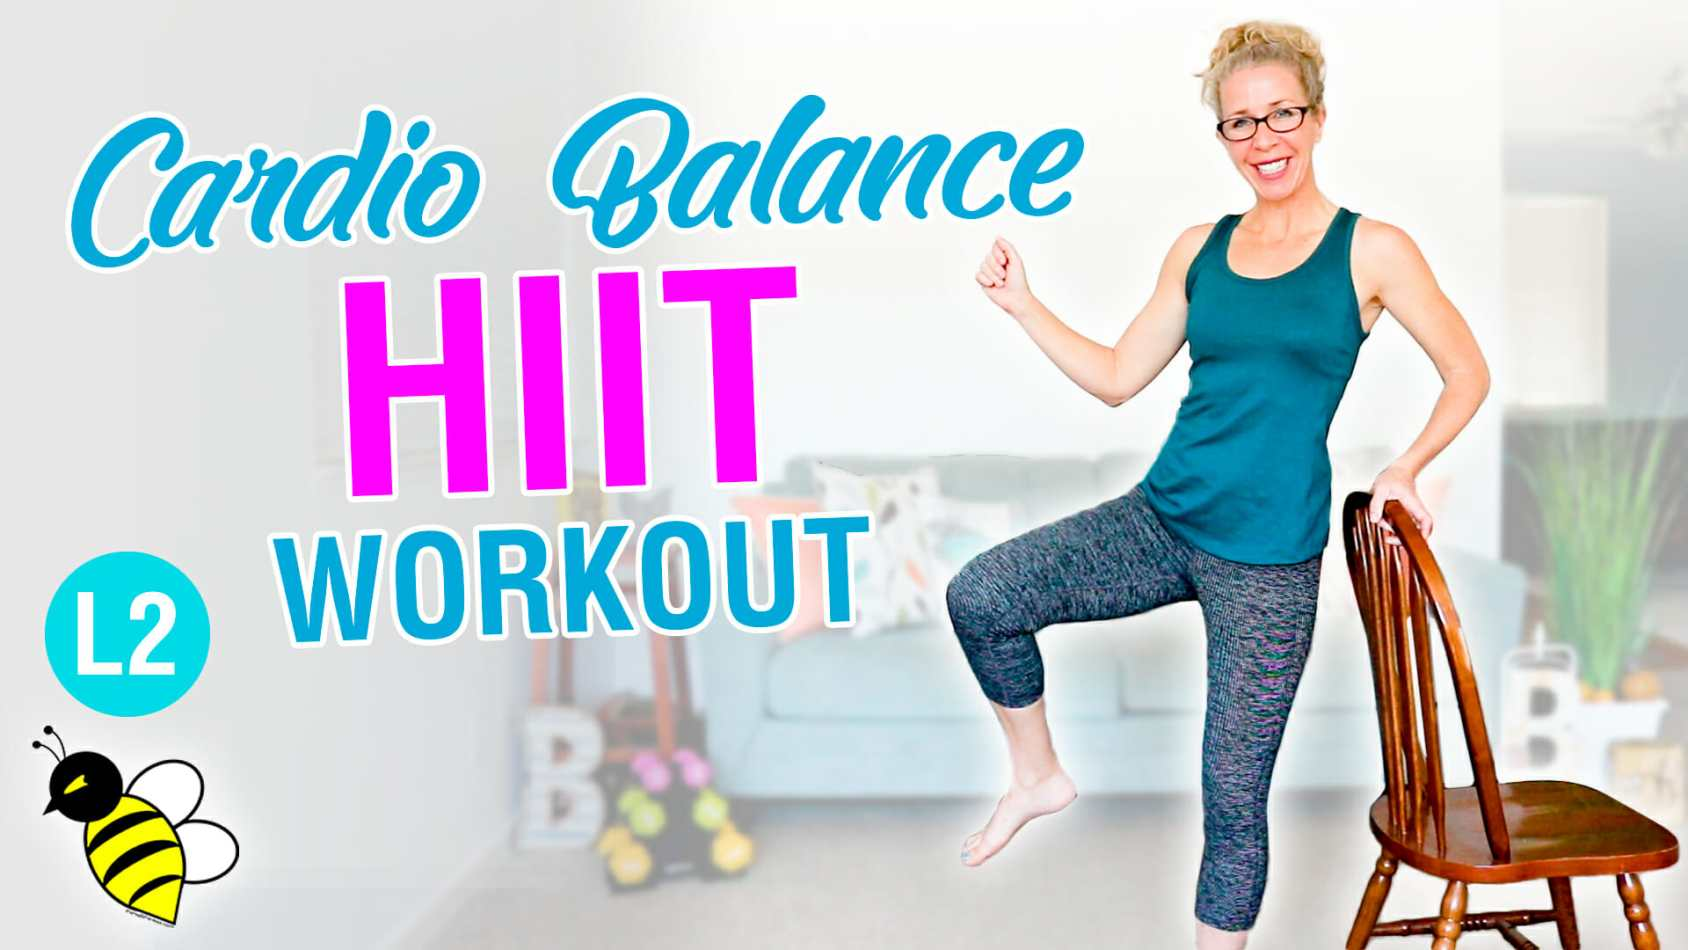 Cardio Balance HIIT empowering 10 minute home workout